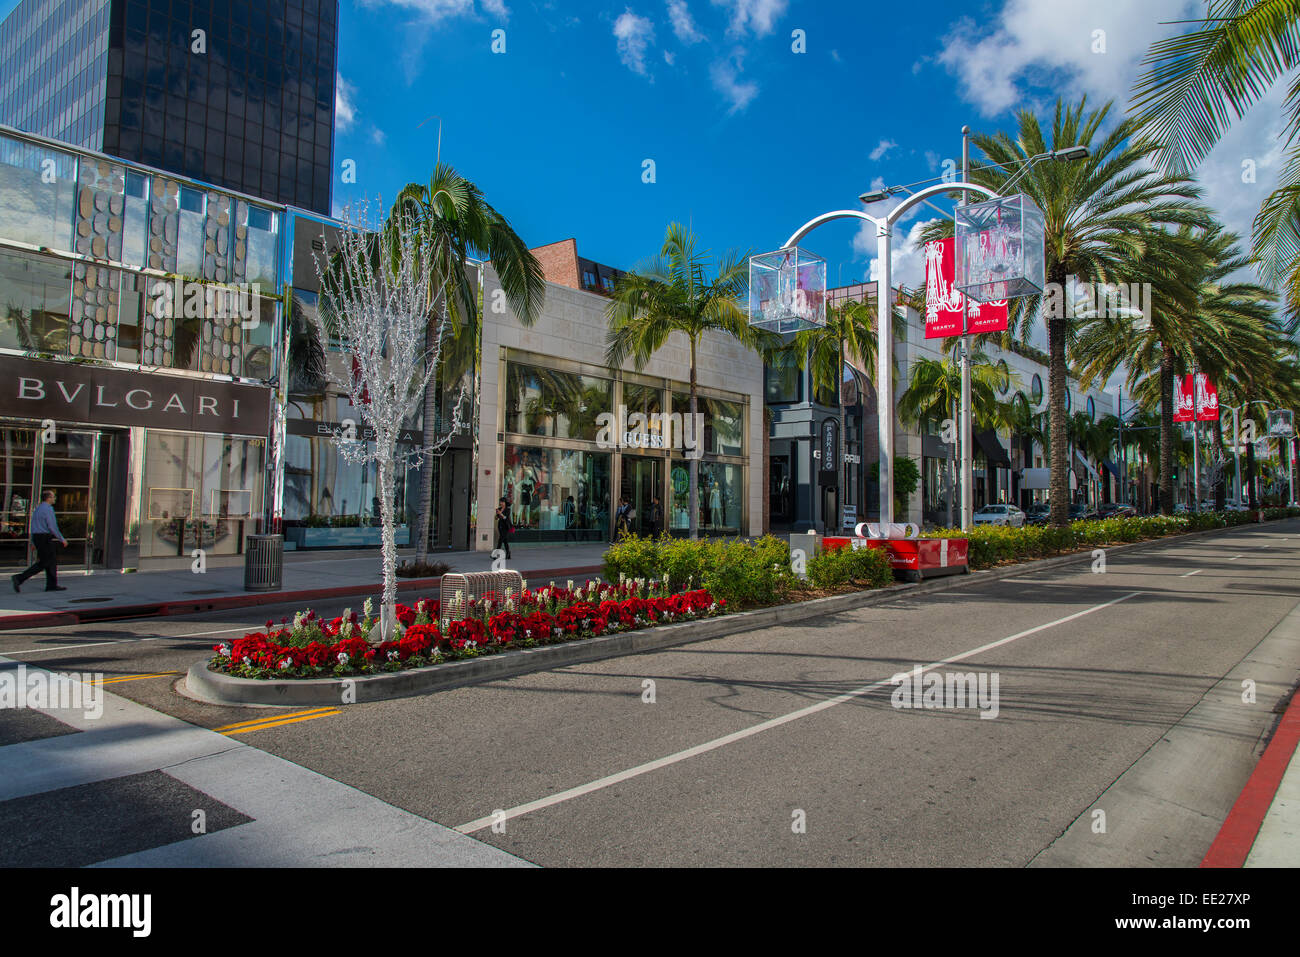 Elegant and trendy shops along Rodeo Drive, Beverly Hills, Los Angeles, California, USA - Stock Image